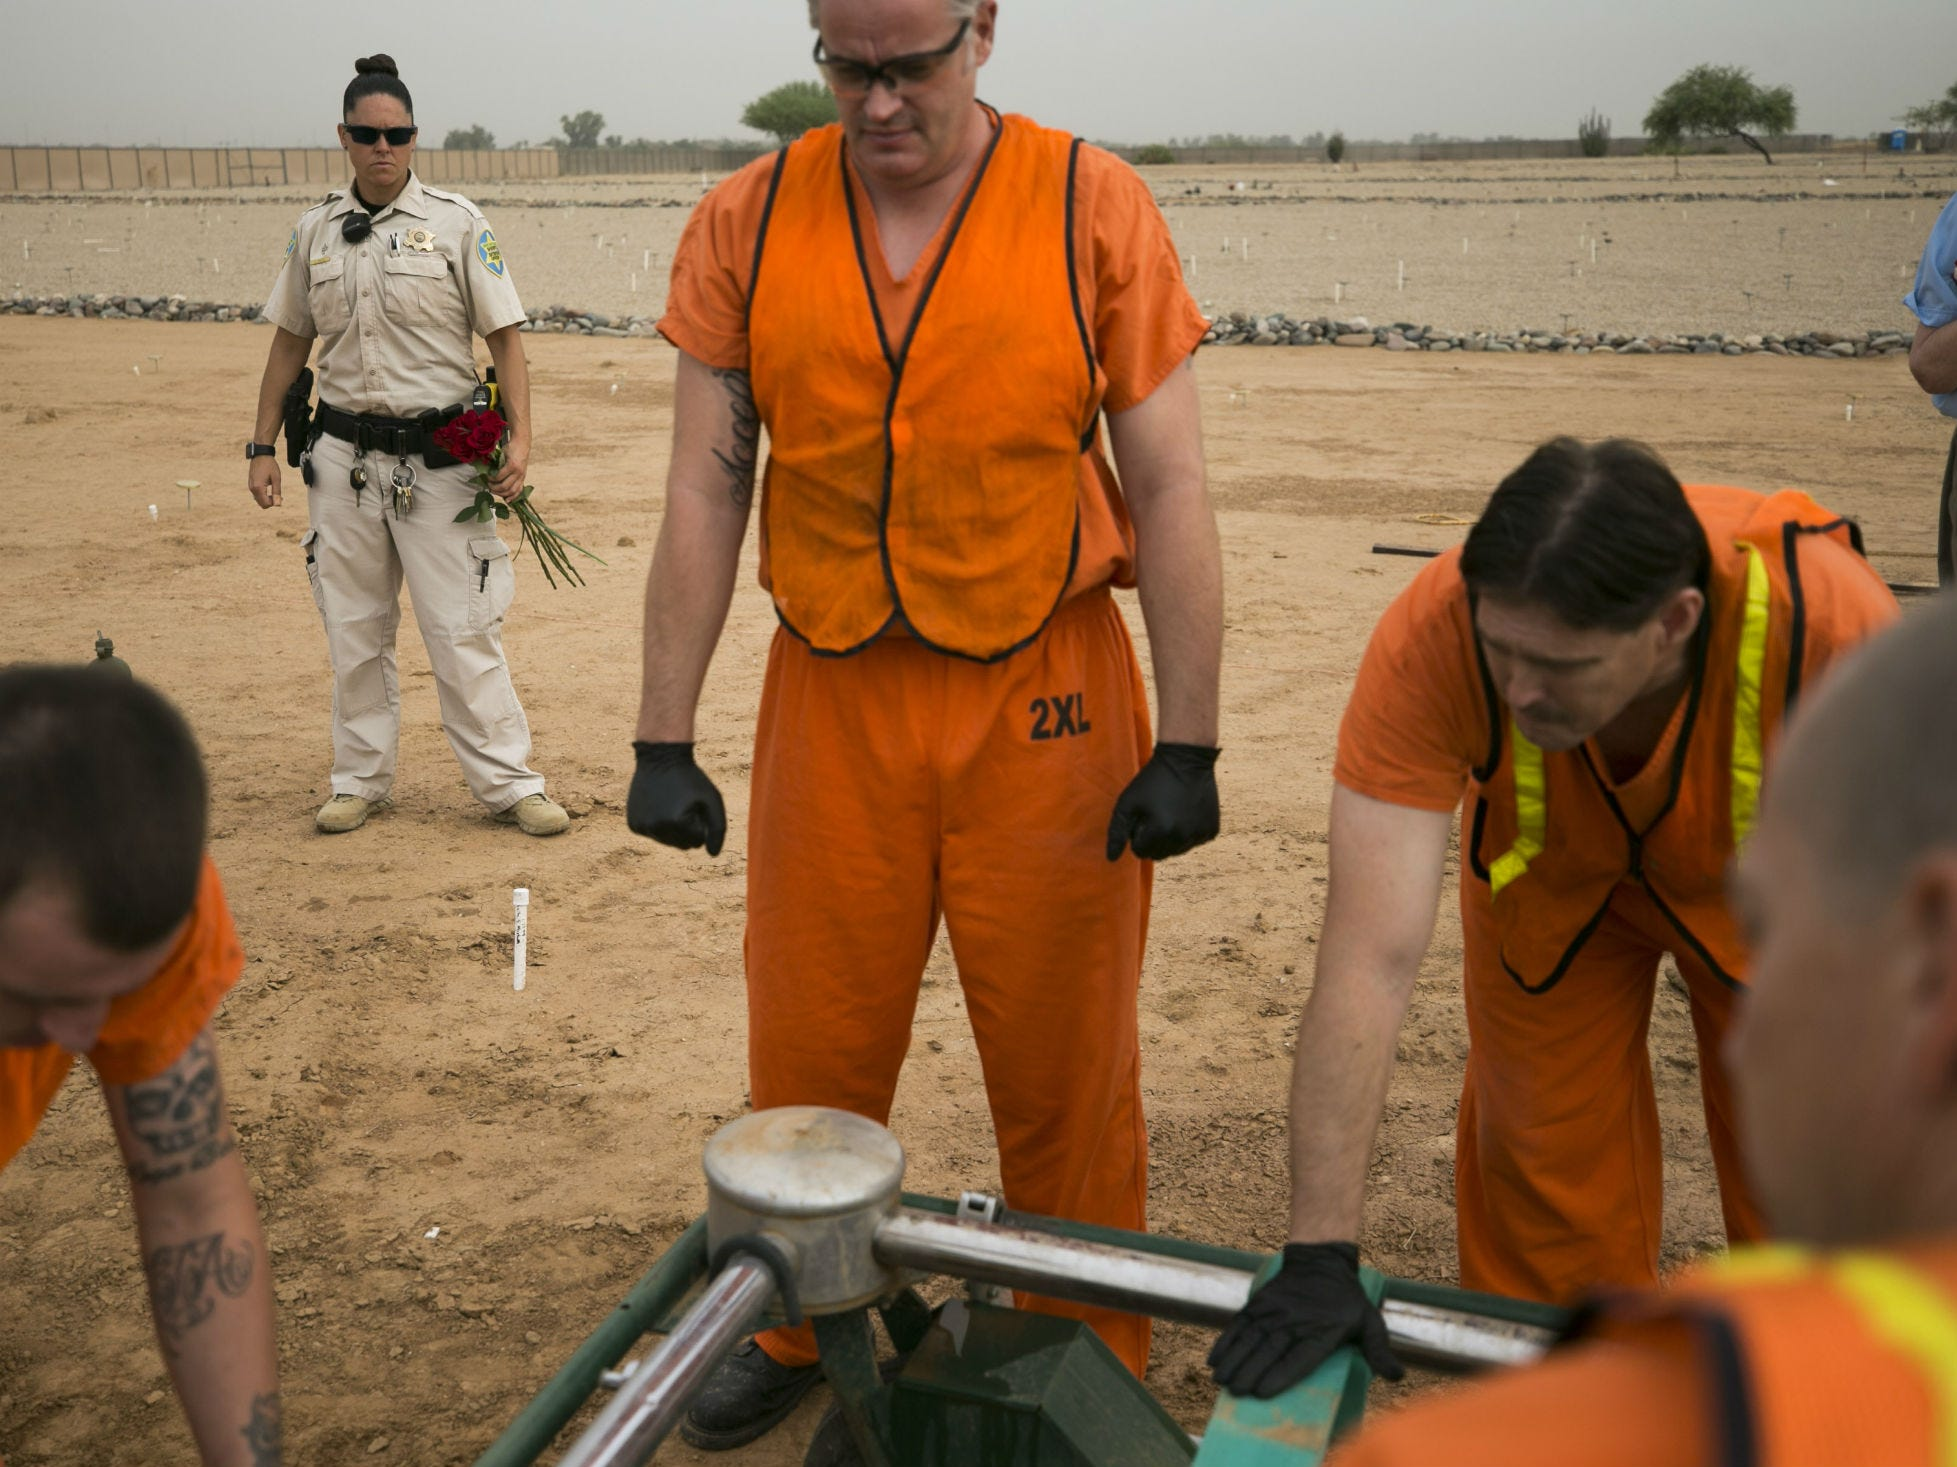 Maricopa County jail inmates assist with the burial of an indigent individual as Maricopa County Corrections Officer D. Prazak keeps a watchful eye at the White Tanks Cemetery in Litchfield Park on Aug. 9, 2018.